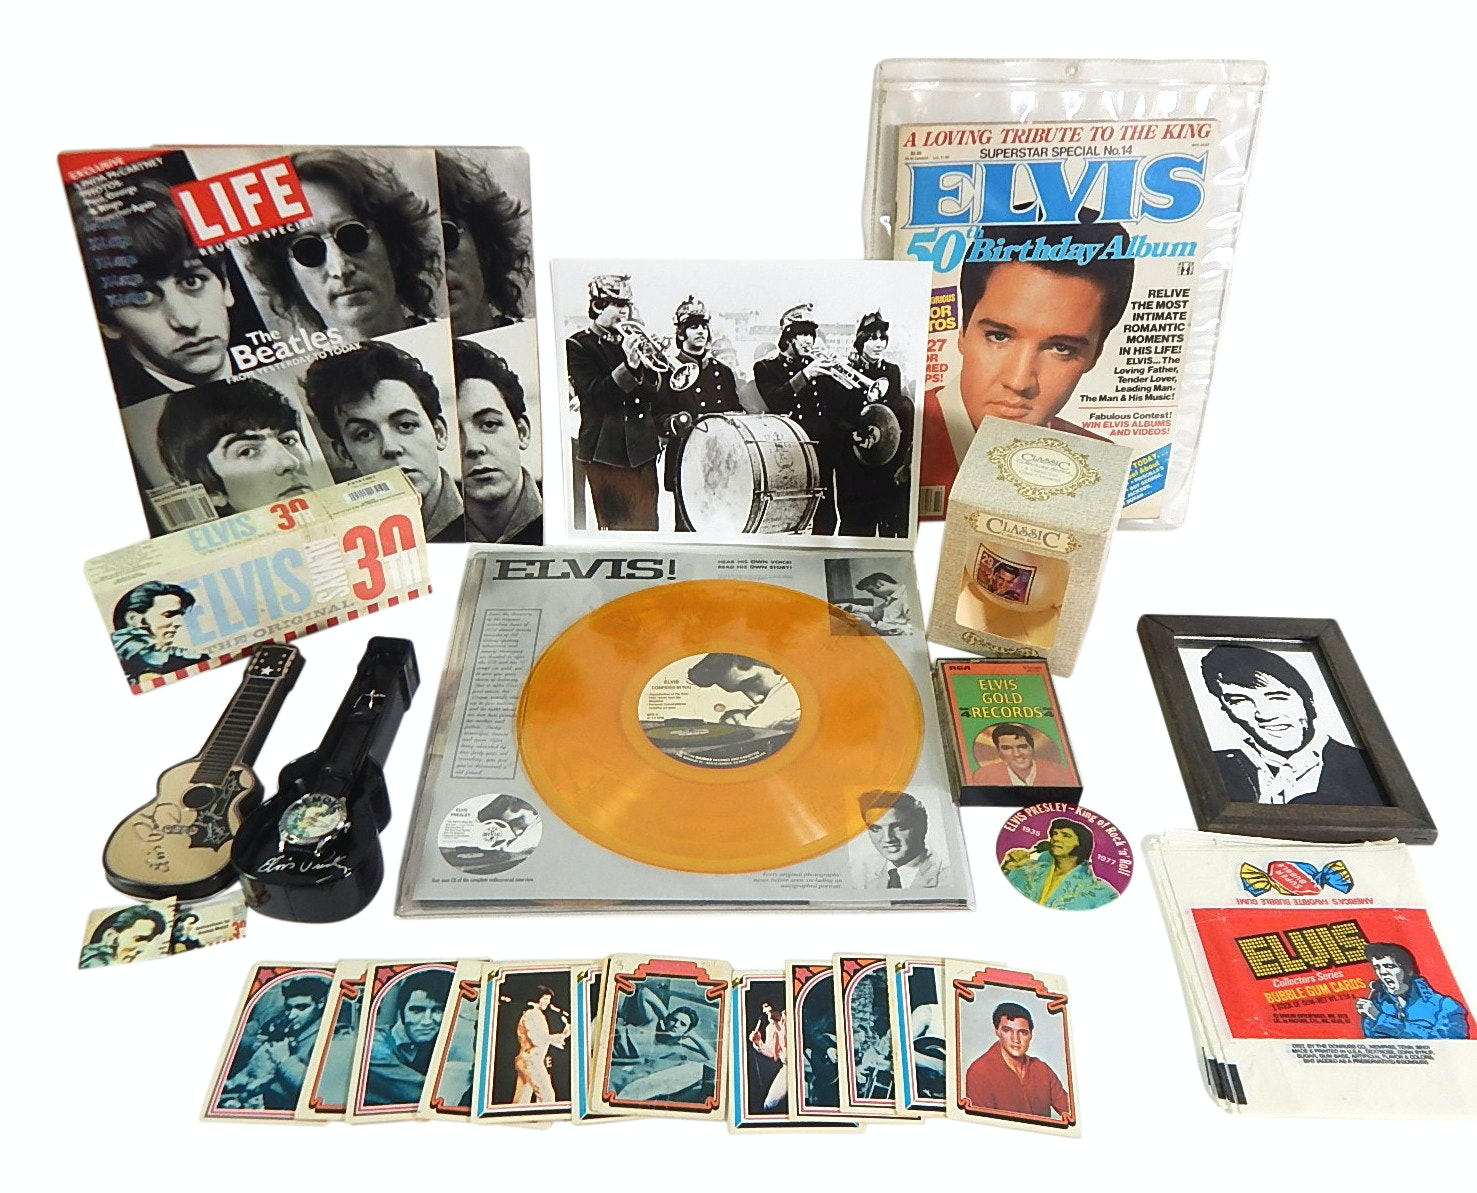 Elvis Presley and The Beatles Collectibles and Memorabilia